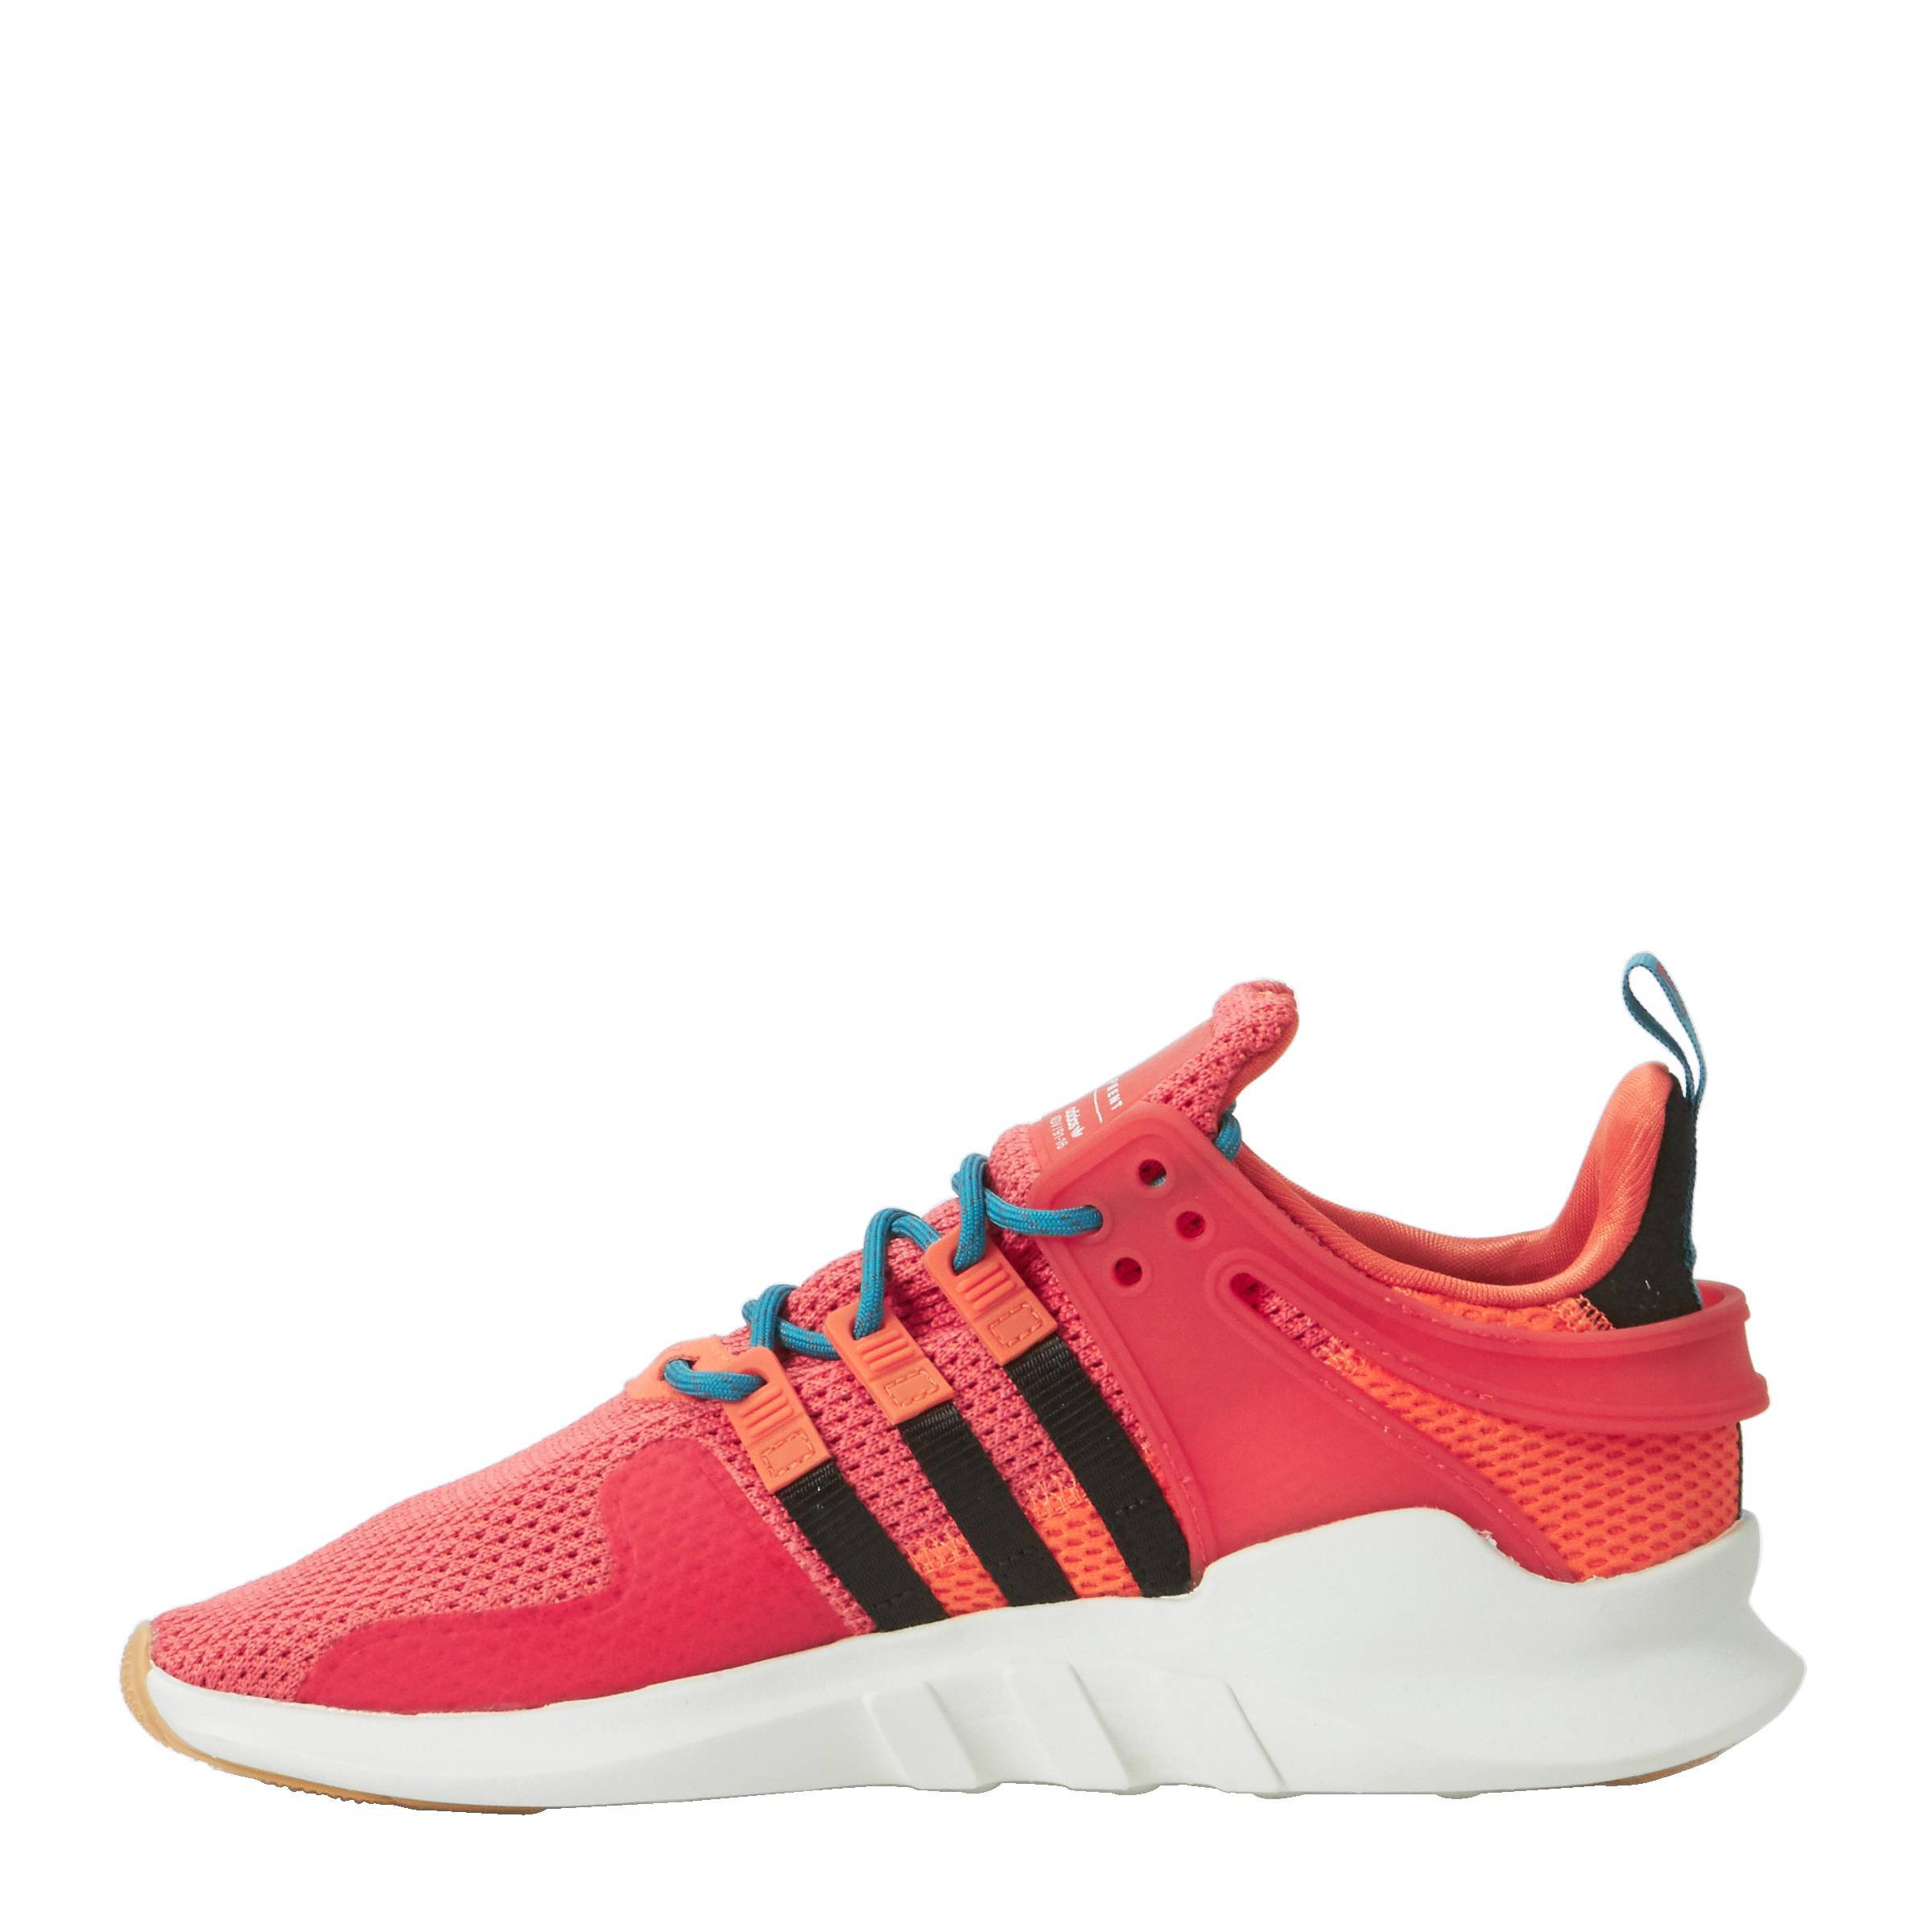 separation shoes 8e0ae 21f34 adidas originals EQT Support ADV Summer sneakers  wehkamp